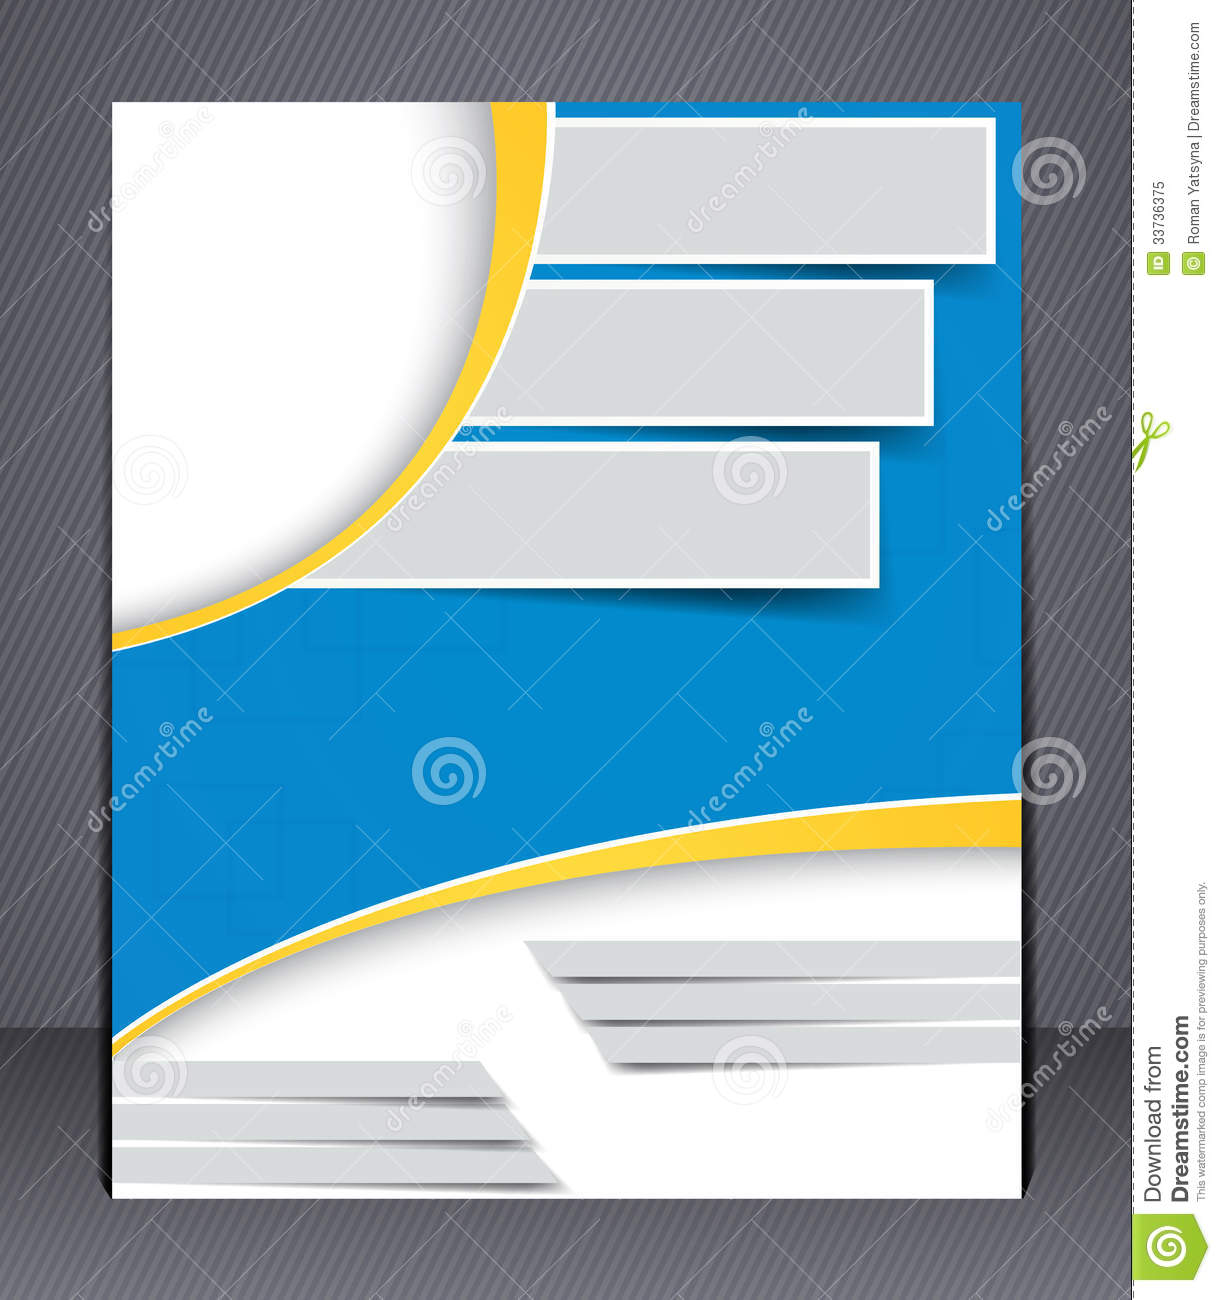 Brochure design in blue and yellow colors stock vector for Free design templates